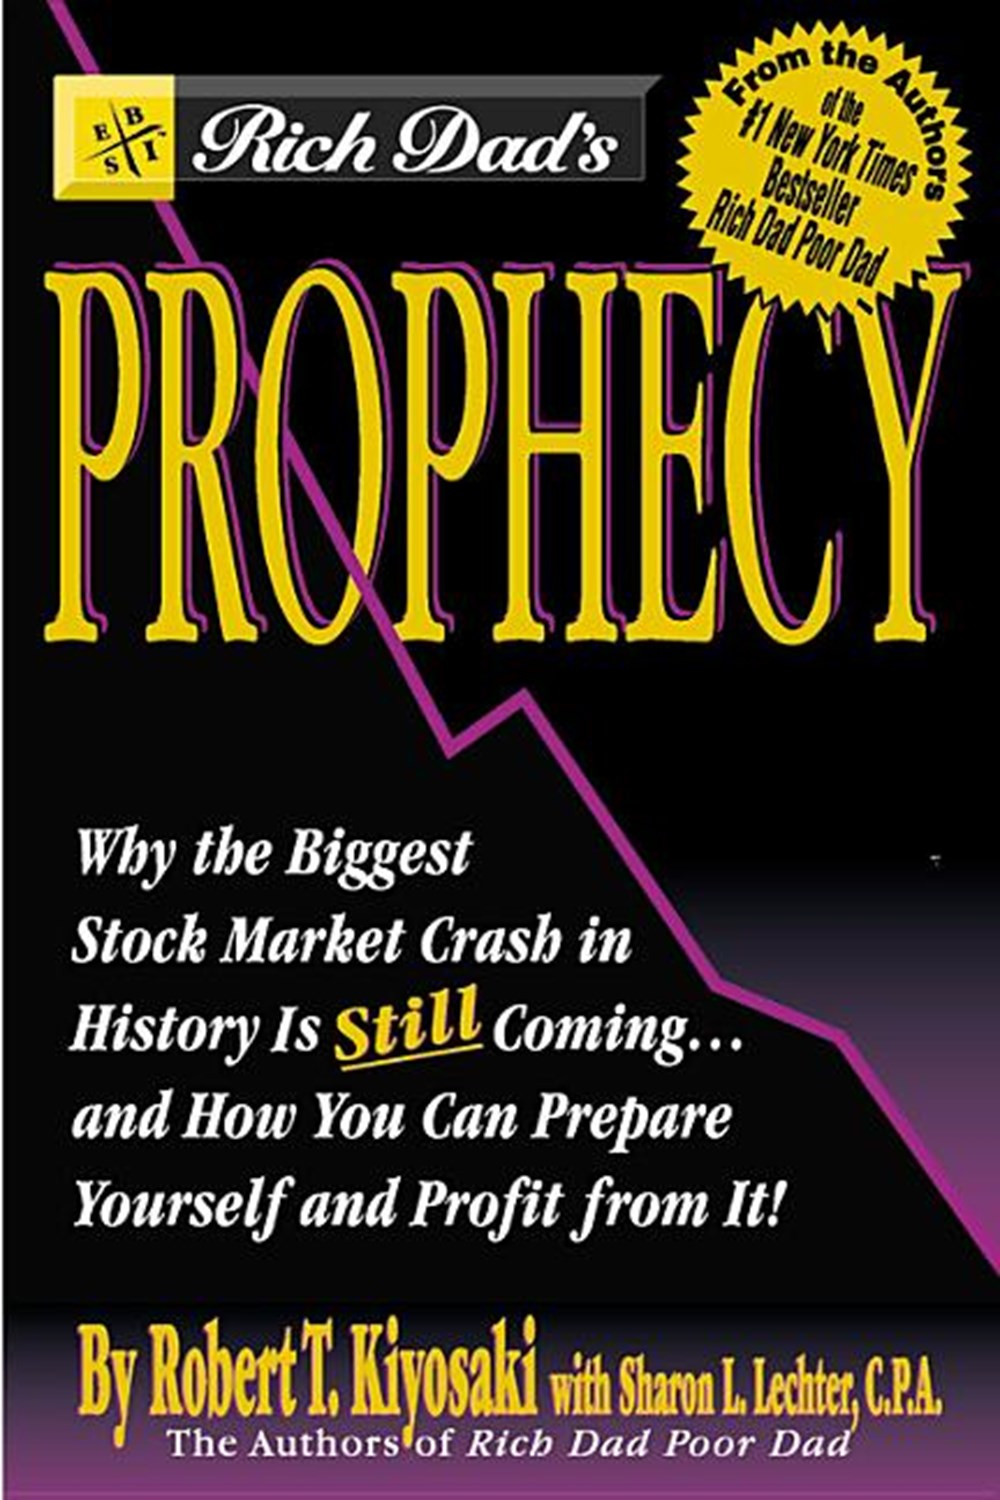 Rich Dad's Prophecy Why the Biggest Stock Market Crash in History Is Still Coming...and How You Can